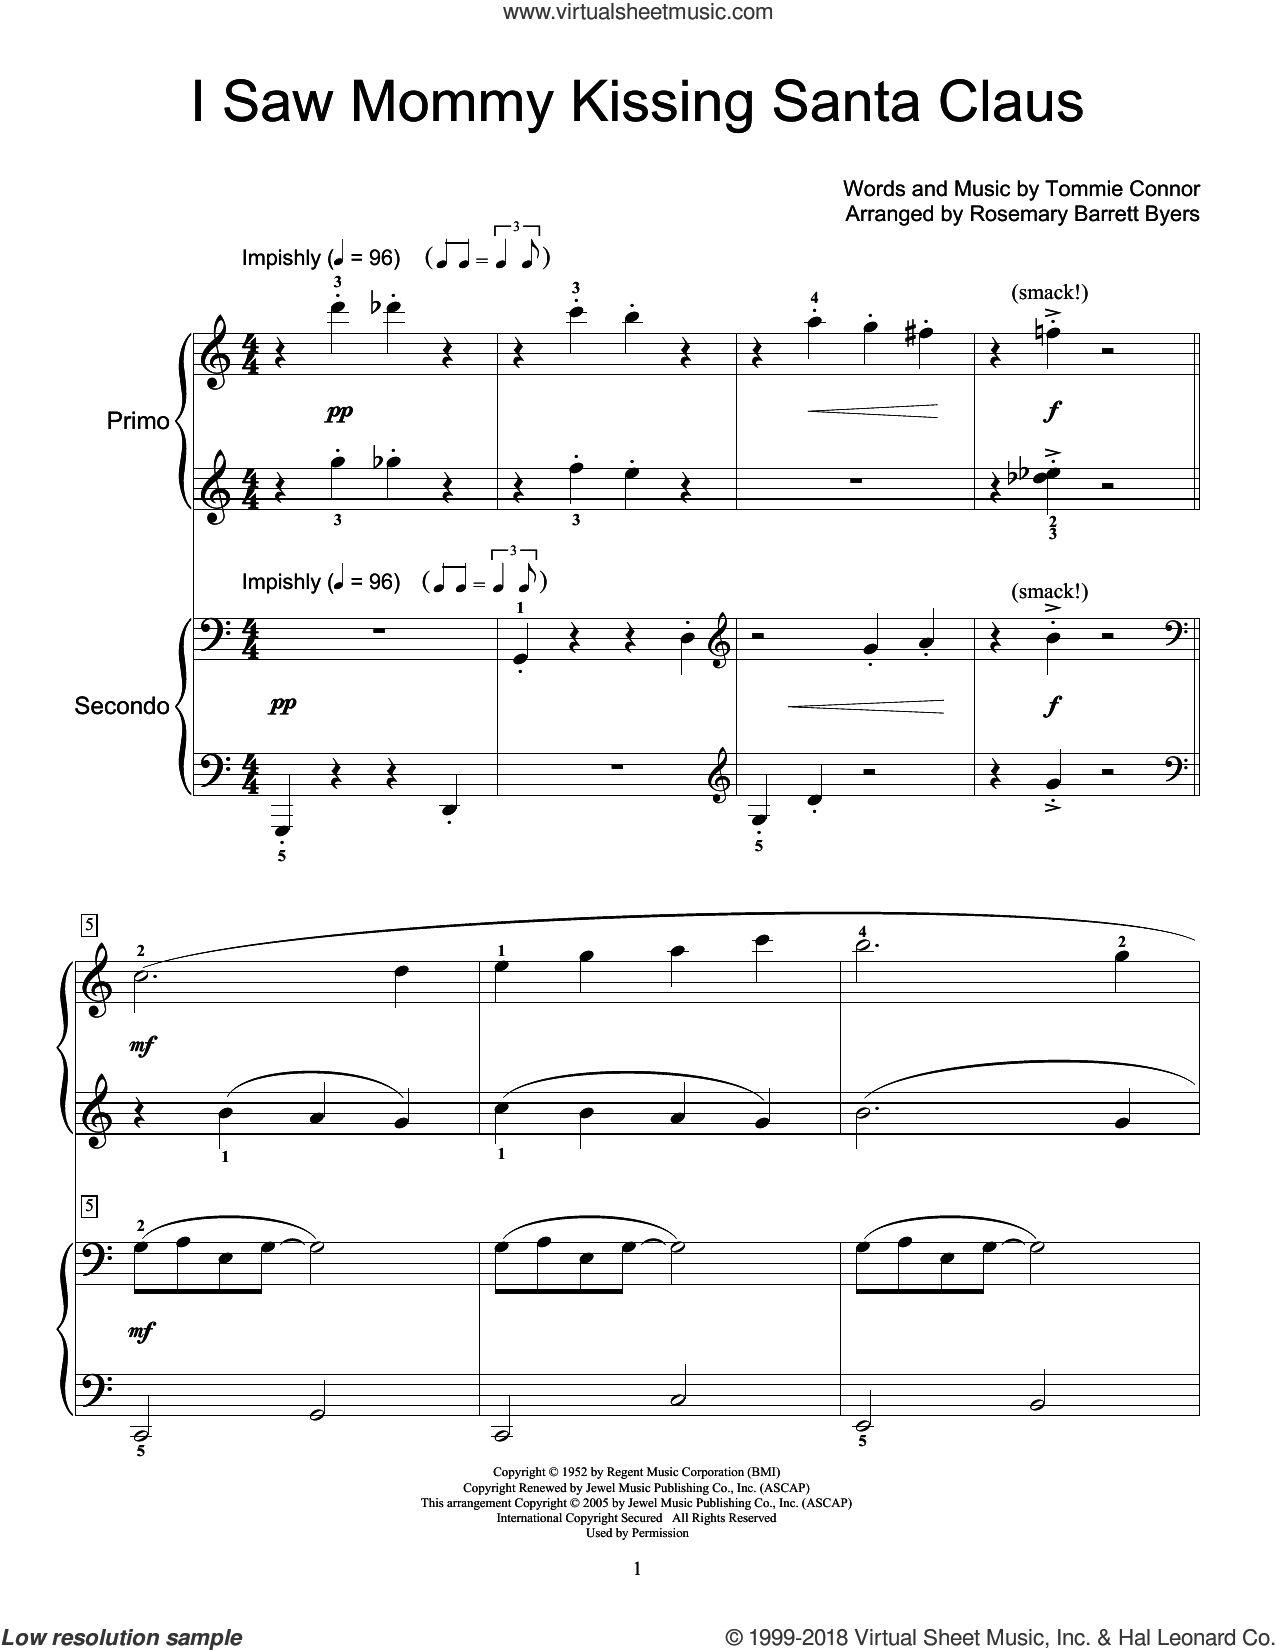 I Saw Mommy Kissing Santa Claus sheet music for piano four hands by Tommie Connor and Miscellaneous, intermediate skill level